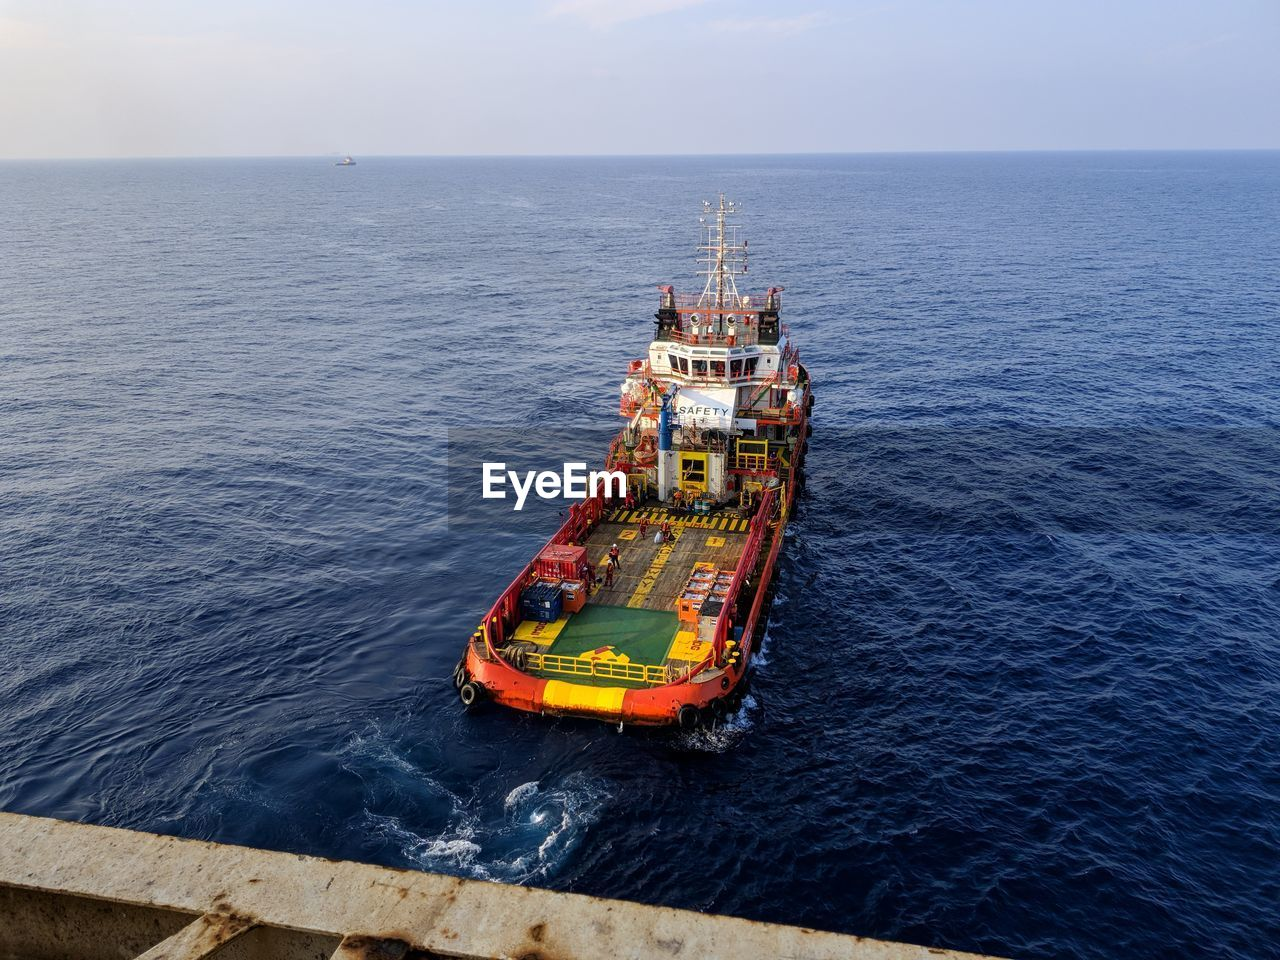 sea, water, nautical vessel, transportation, horizon over water, mode of transportation, horizon, sky, day, nature, high angle view, offshore platform, scenics - nature, industry, outdoors, beauty in nature, no people, ship, business